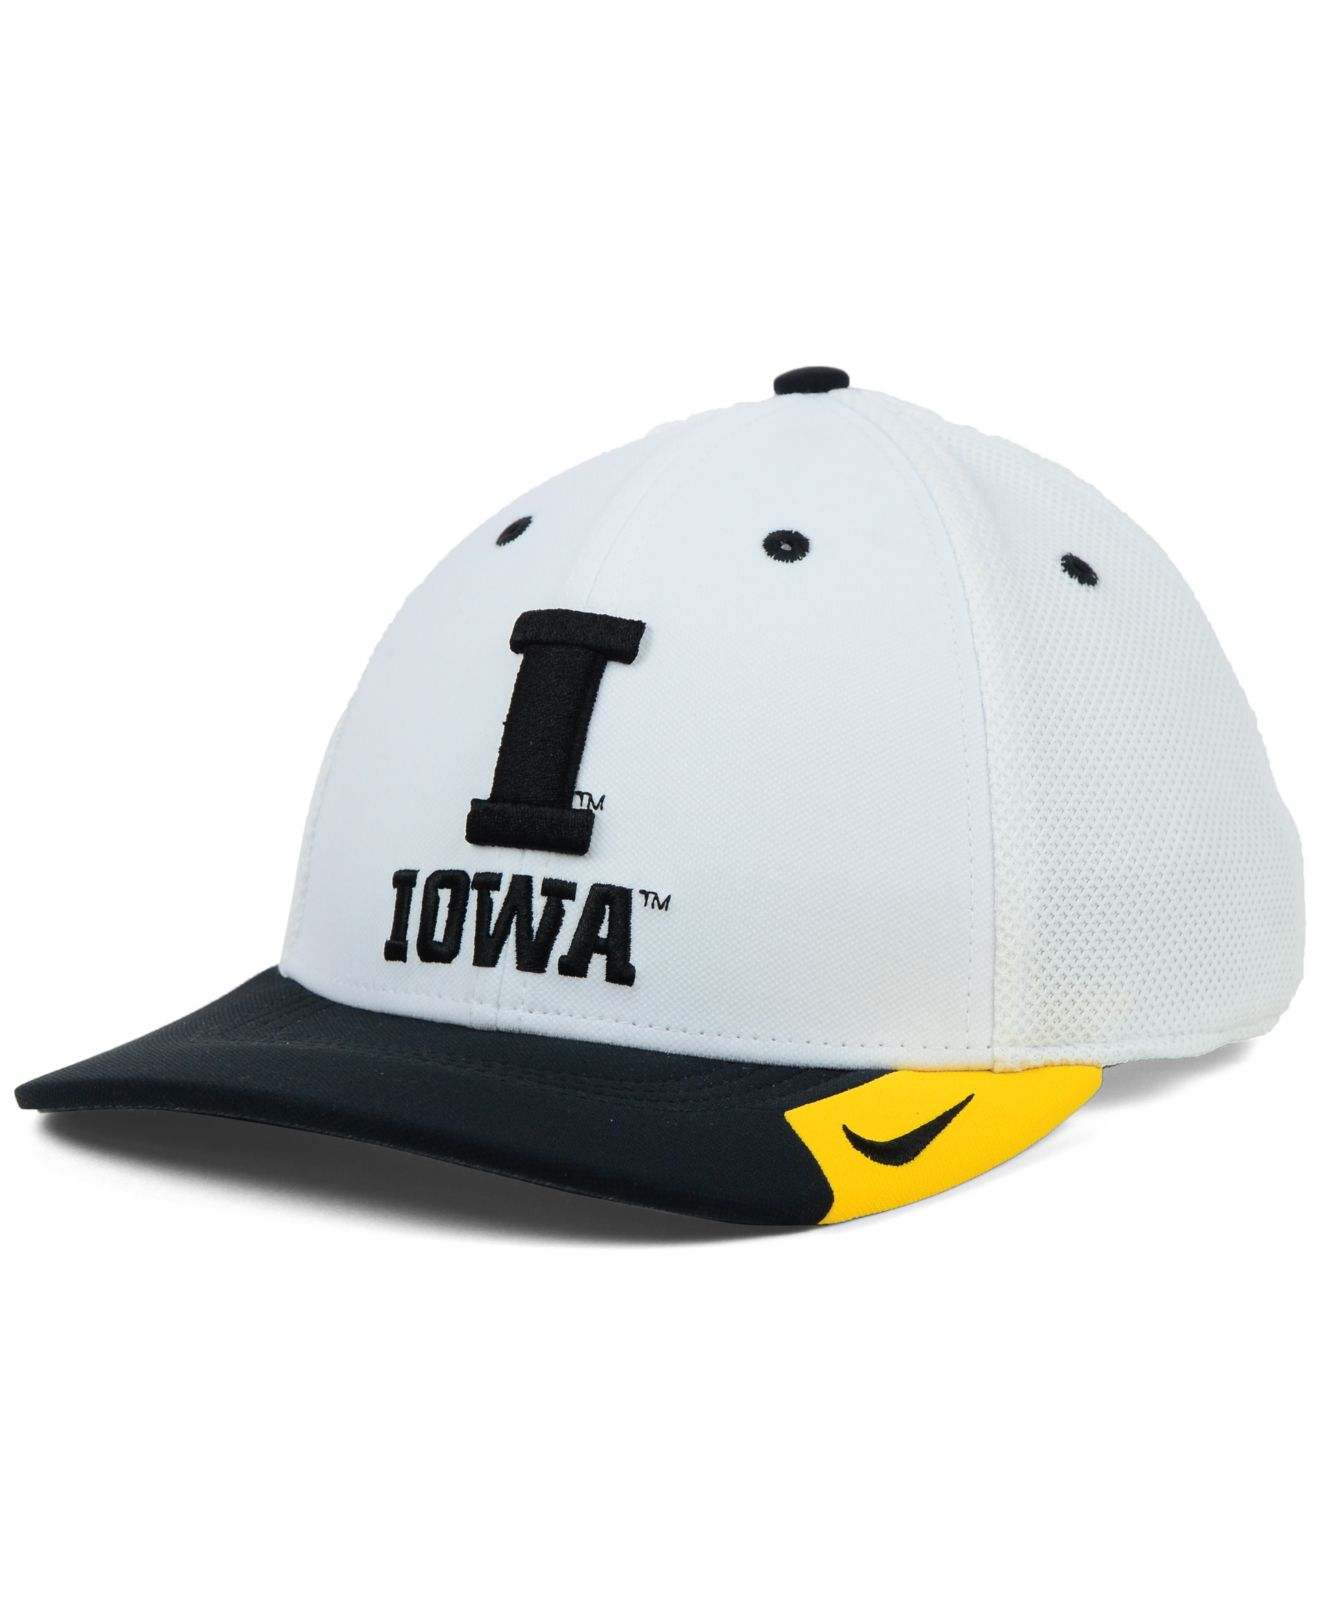 162d2a78a01 Lyst - Nike Iowa Hawkeyes Ncaa Conference Swf Cap in White for Men